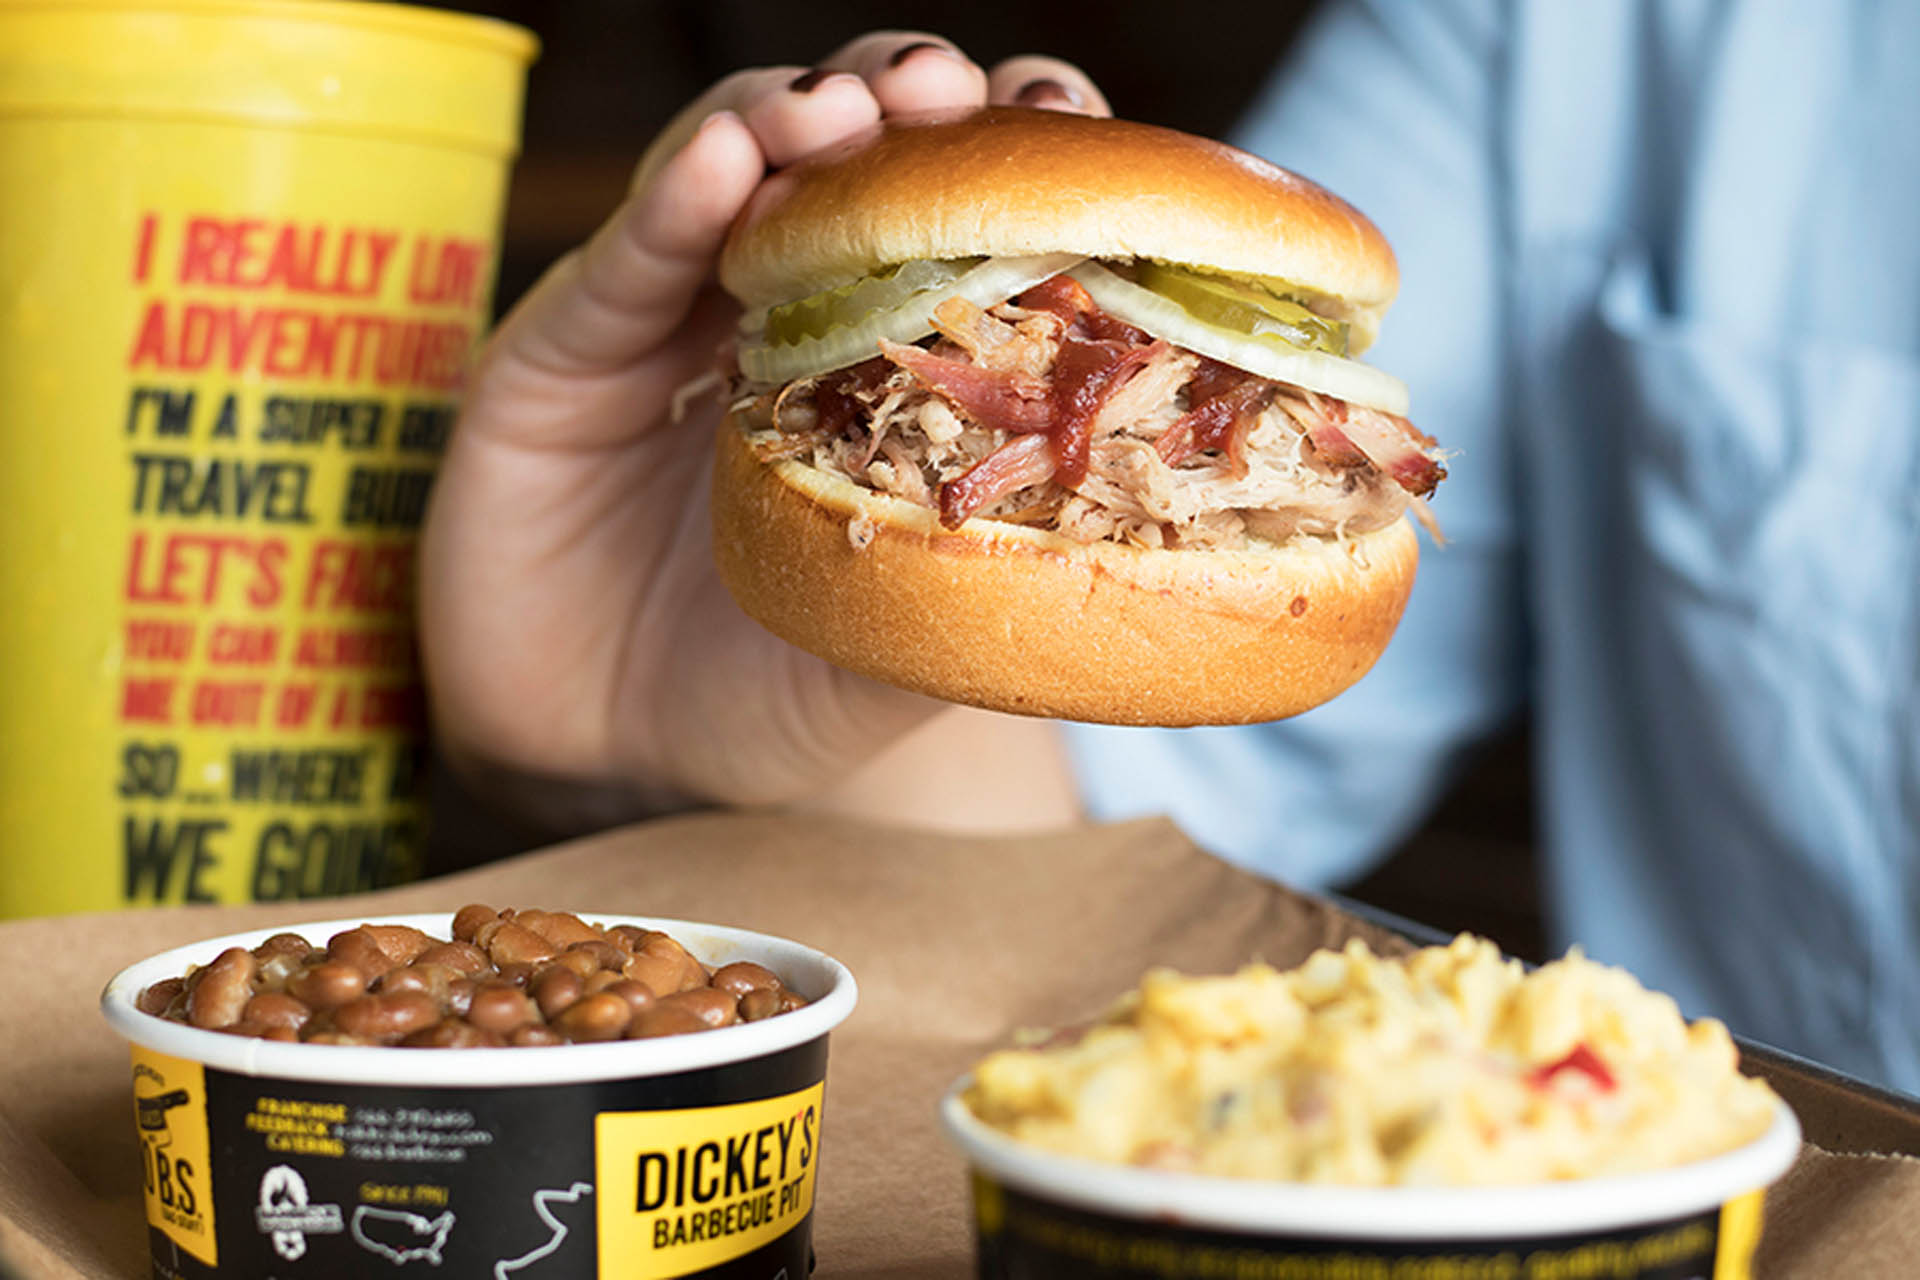 Franchising.com: Dickey's Barbecue Pit: The Nation's Catering Experts